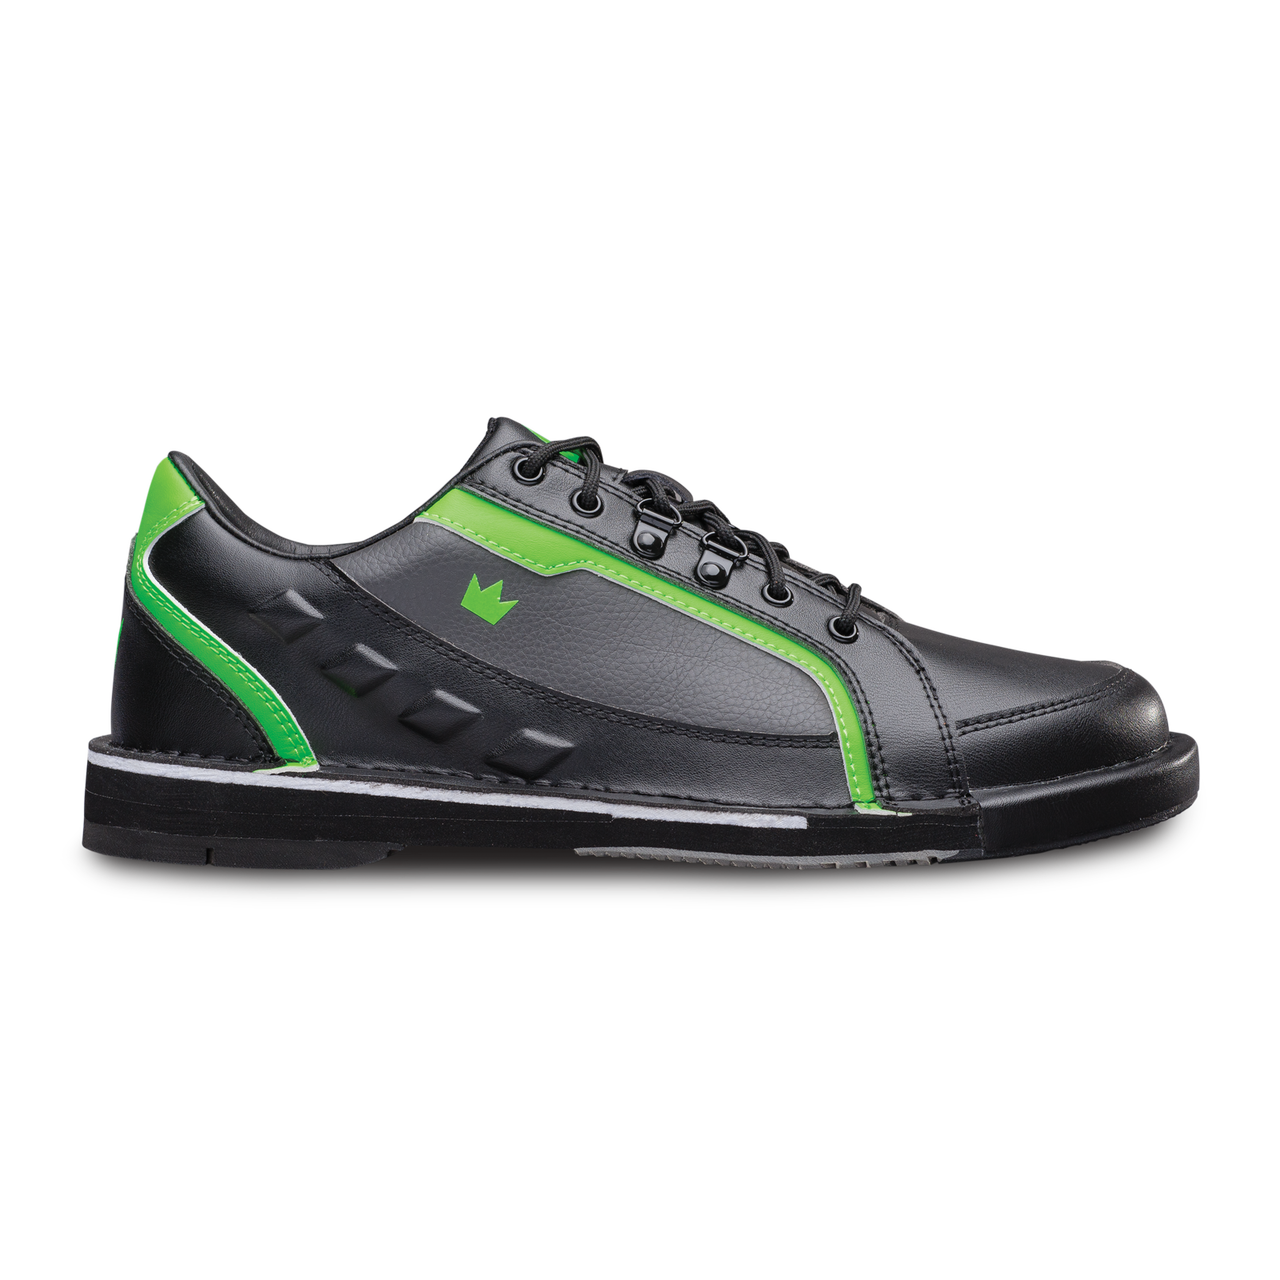 e1e9d7a71bc1f0 ... Brunswick Punisher Mens Bowling Shoes Black/Neon Green Right Handed  Wide ...